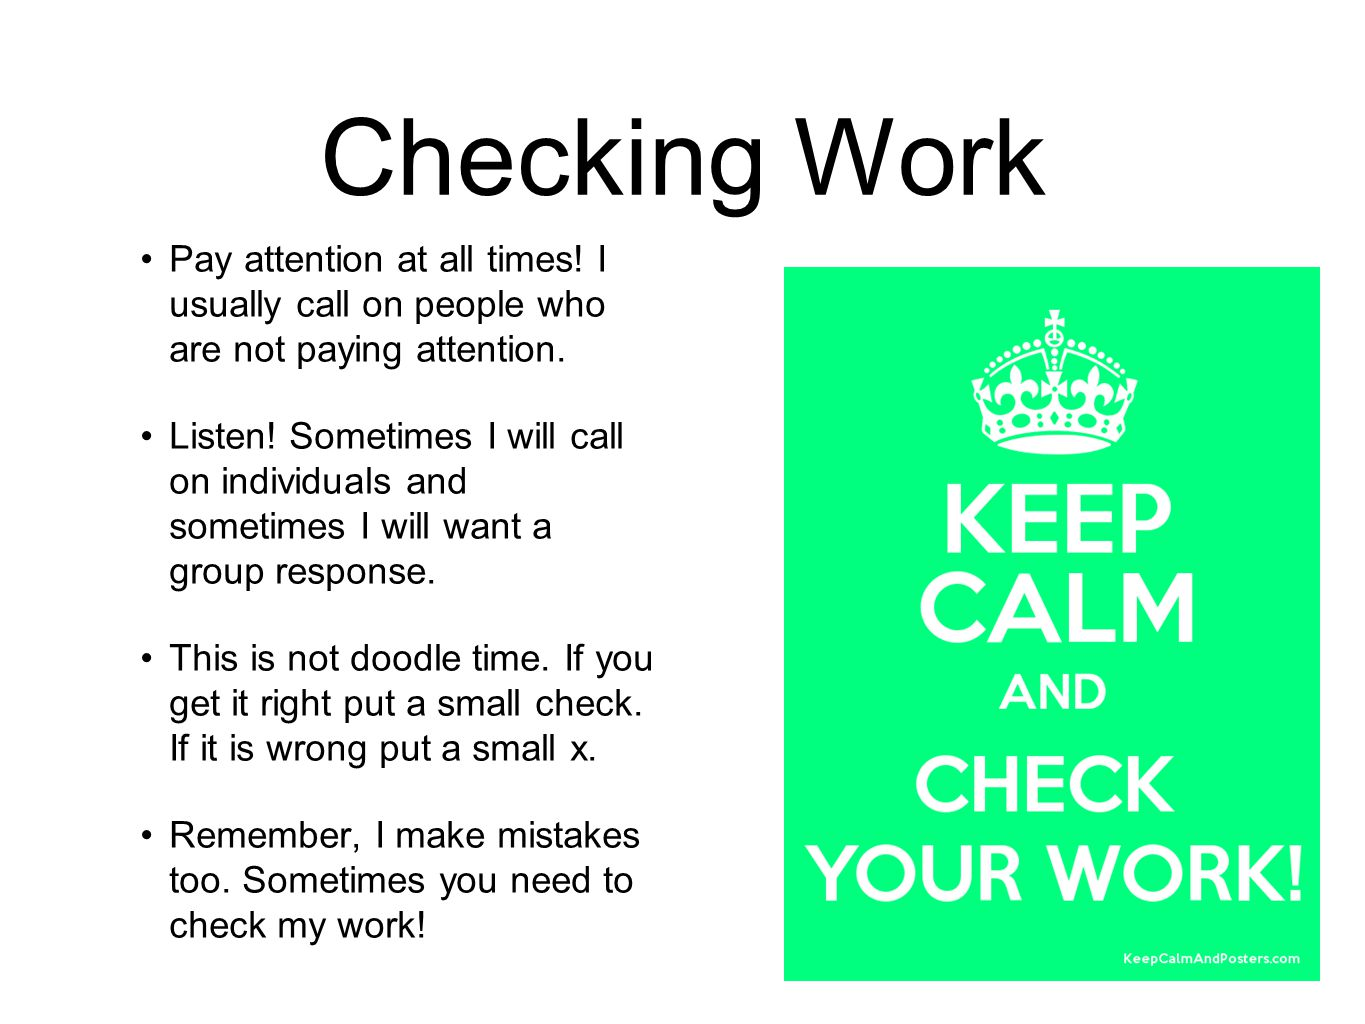 Checking Work Pay attention at all times. I usually call on people who are not paying attention.